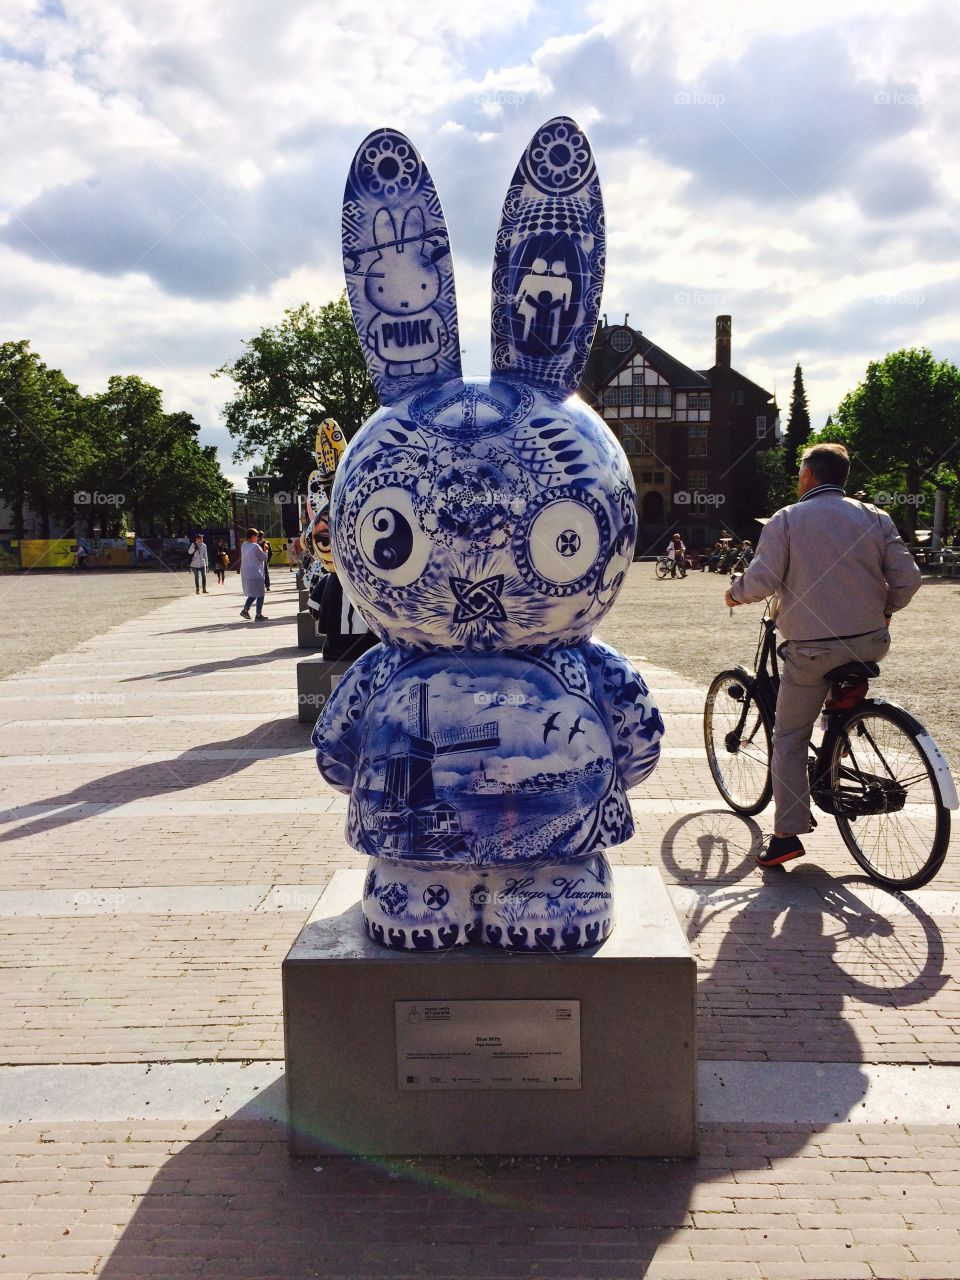 Miffy art contest . This is a Miffy art contest in Amsterdam with the design of delft.